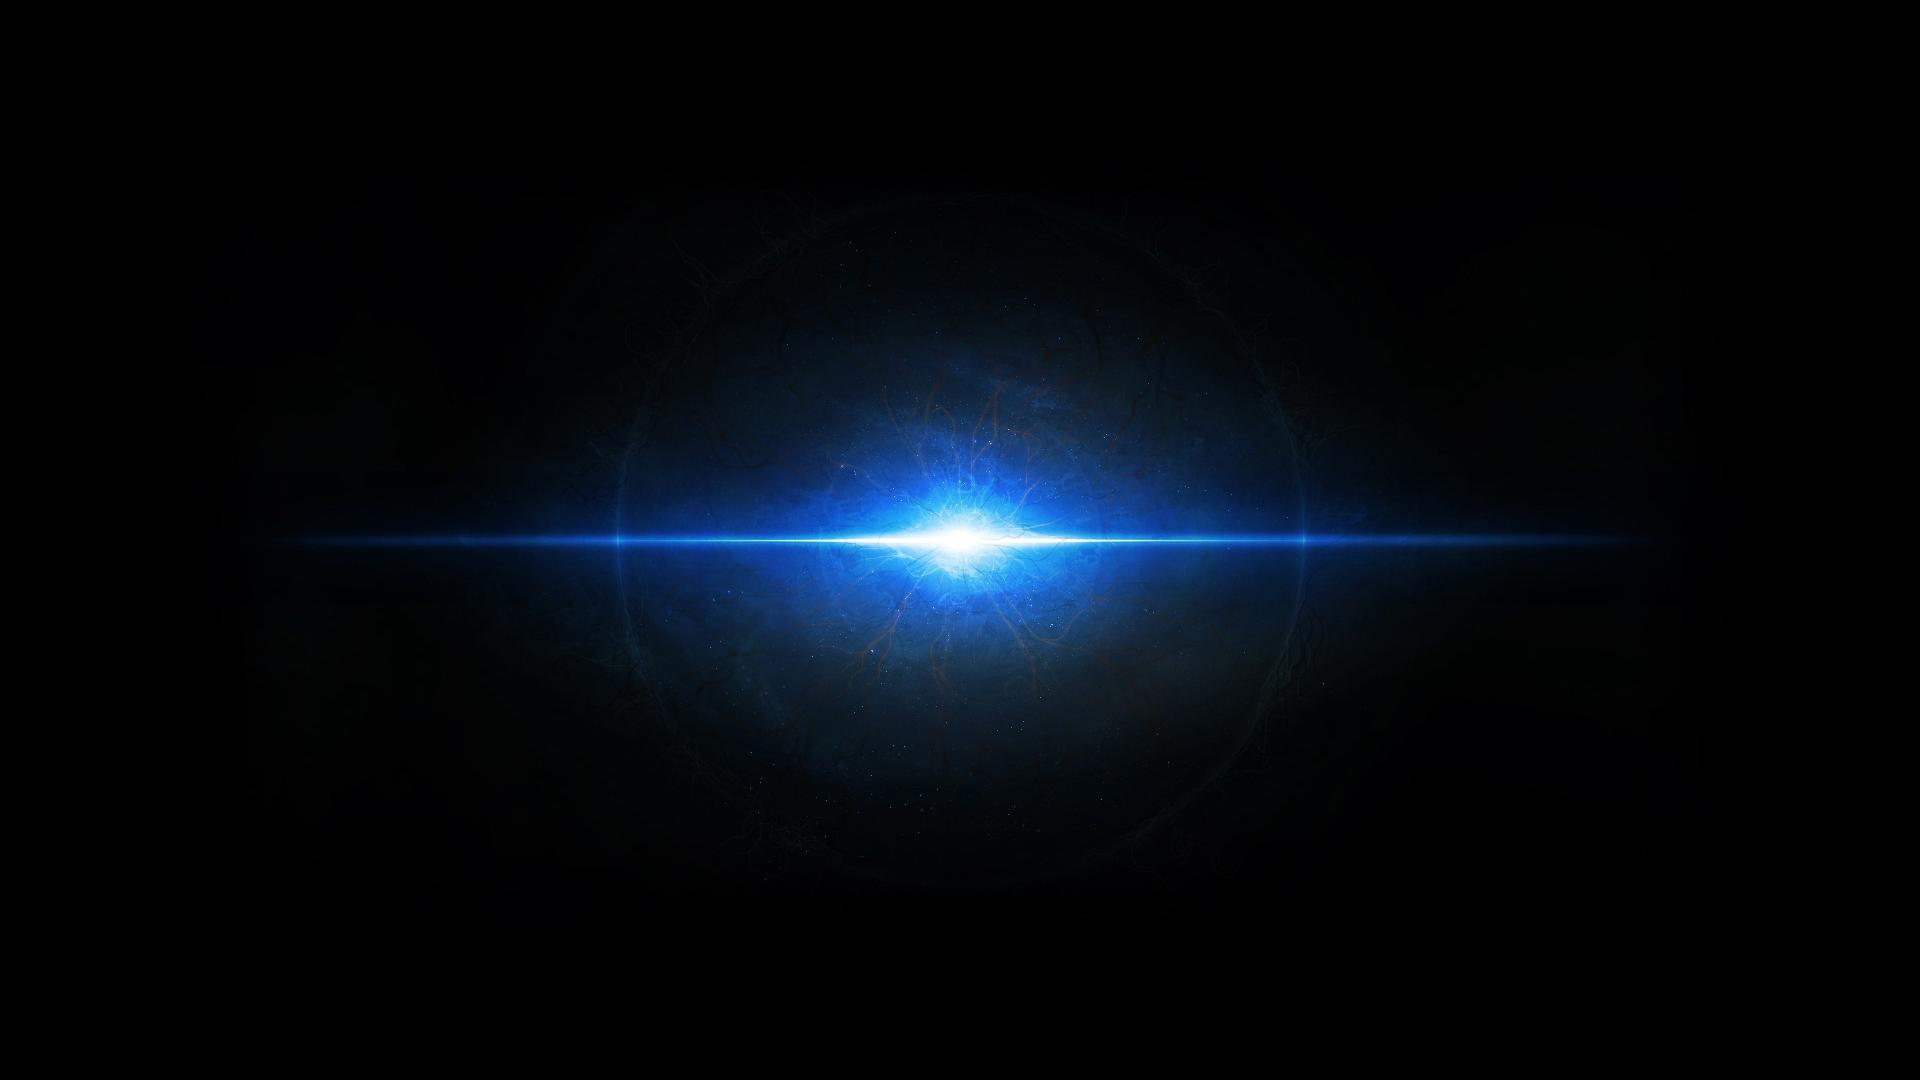 space light in dark universe   Space Wallpapers   Hi Wallpaperscom 1920x1080